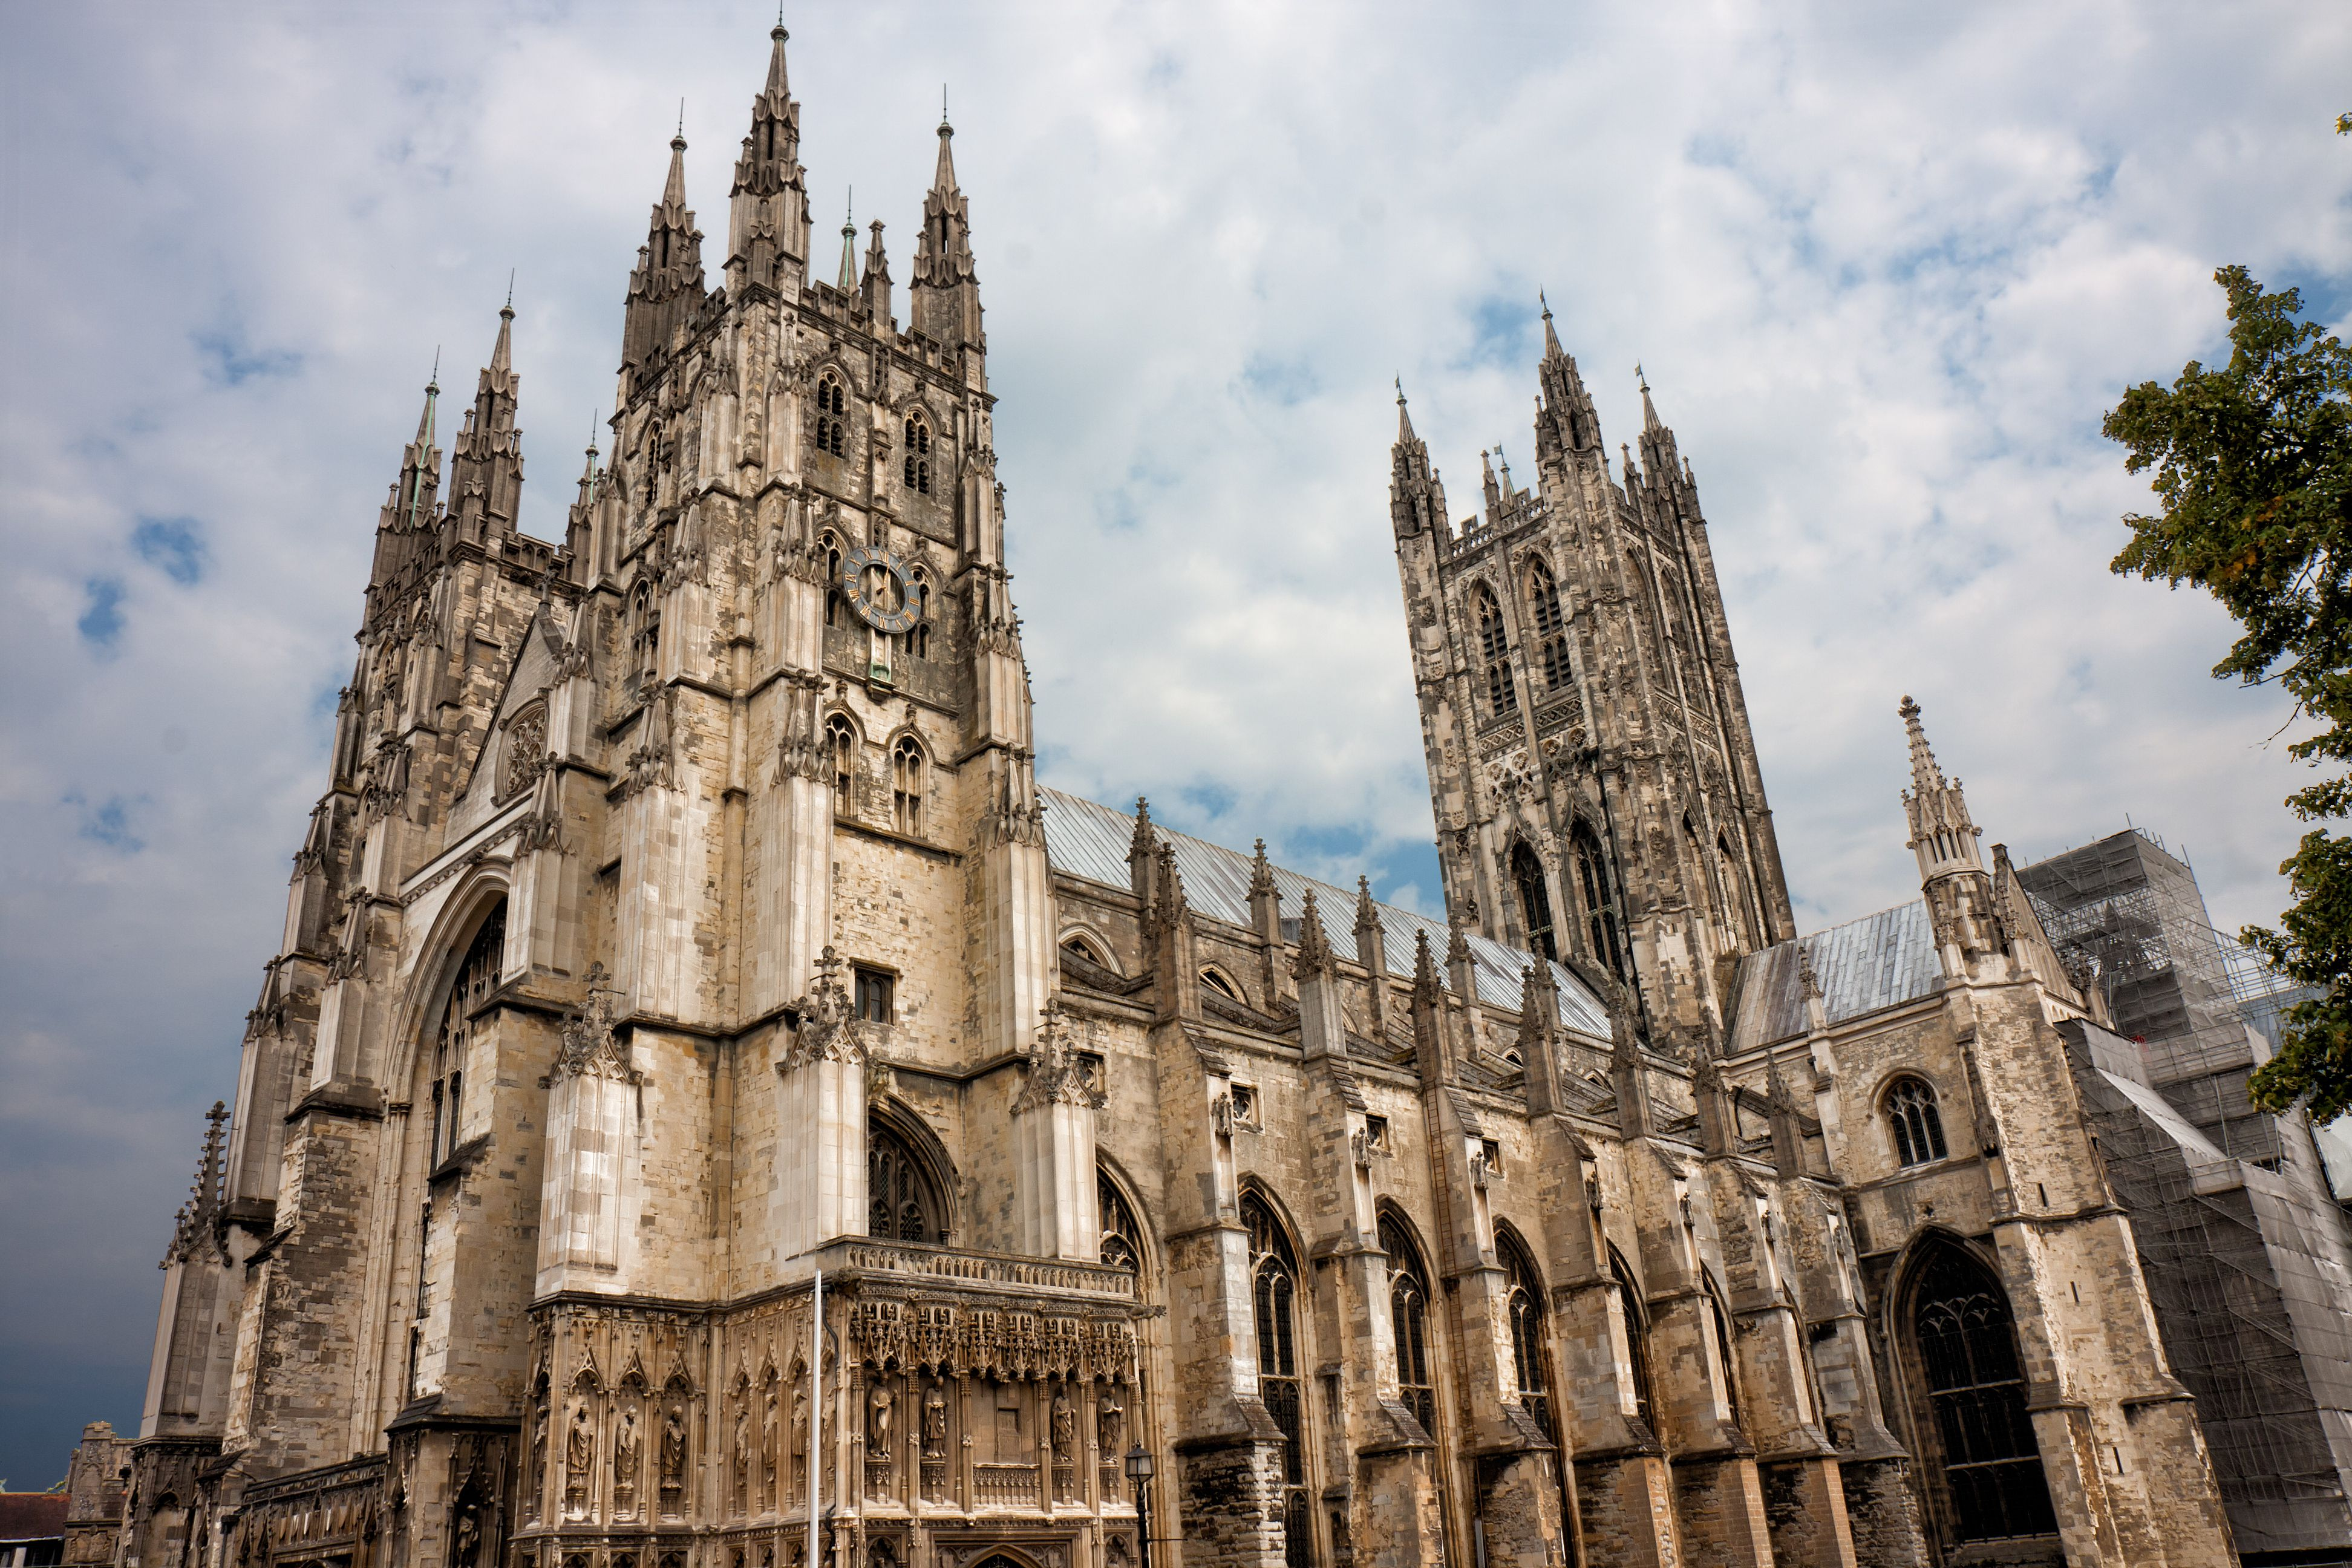 West facade of the cathedral of Canterbury